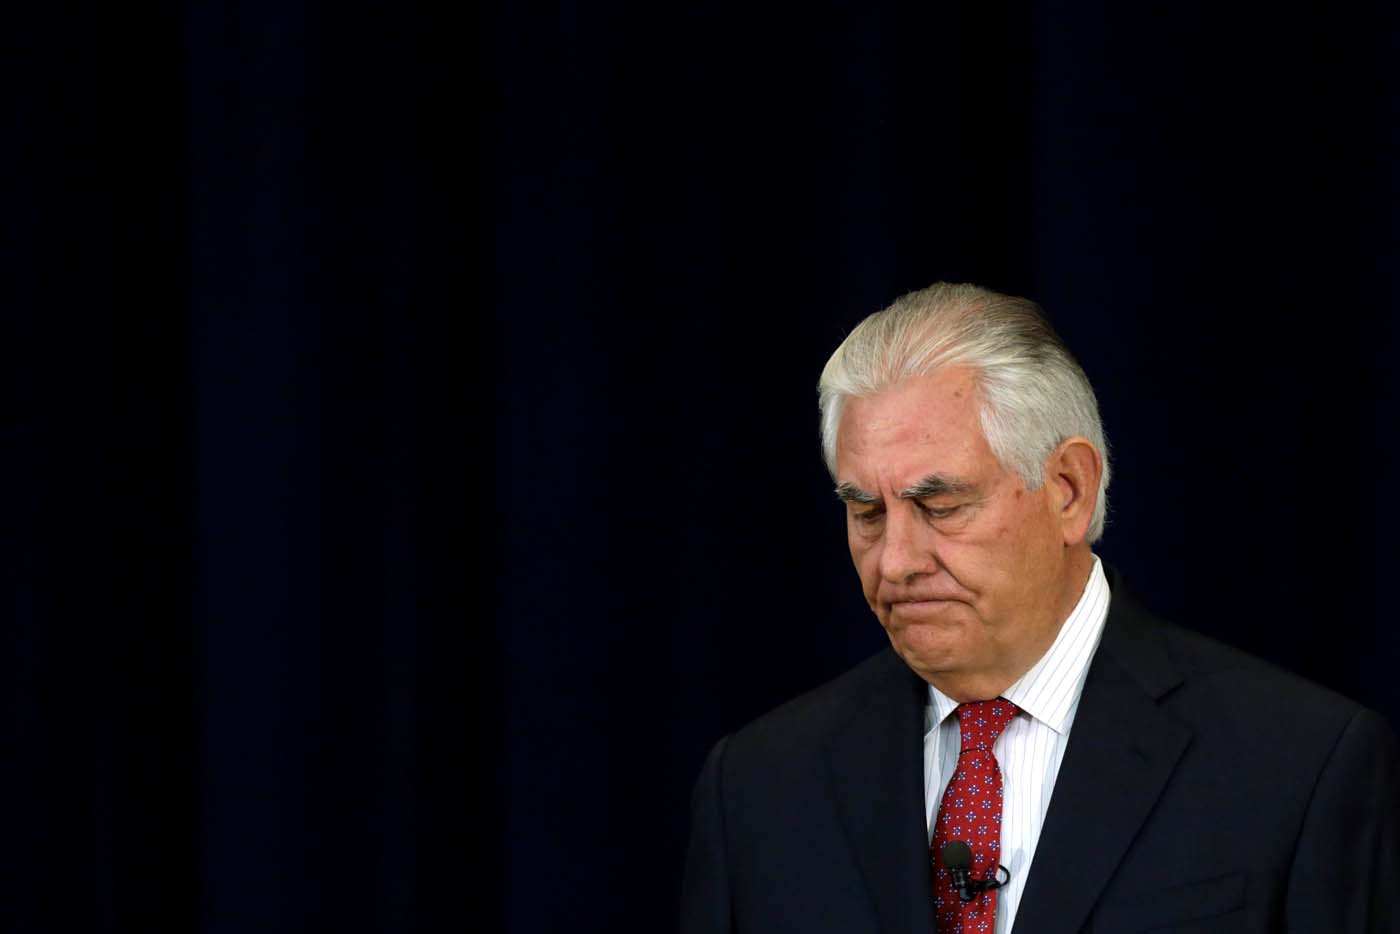 U.S. Secretary of State Rex Tillerson delivers remarks to the employees at the State Department in Washington, U.S., May 3, 2017. REUTERS/Yuri Gripas